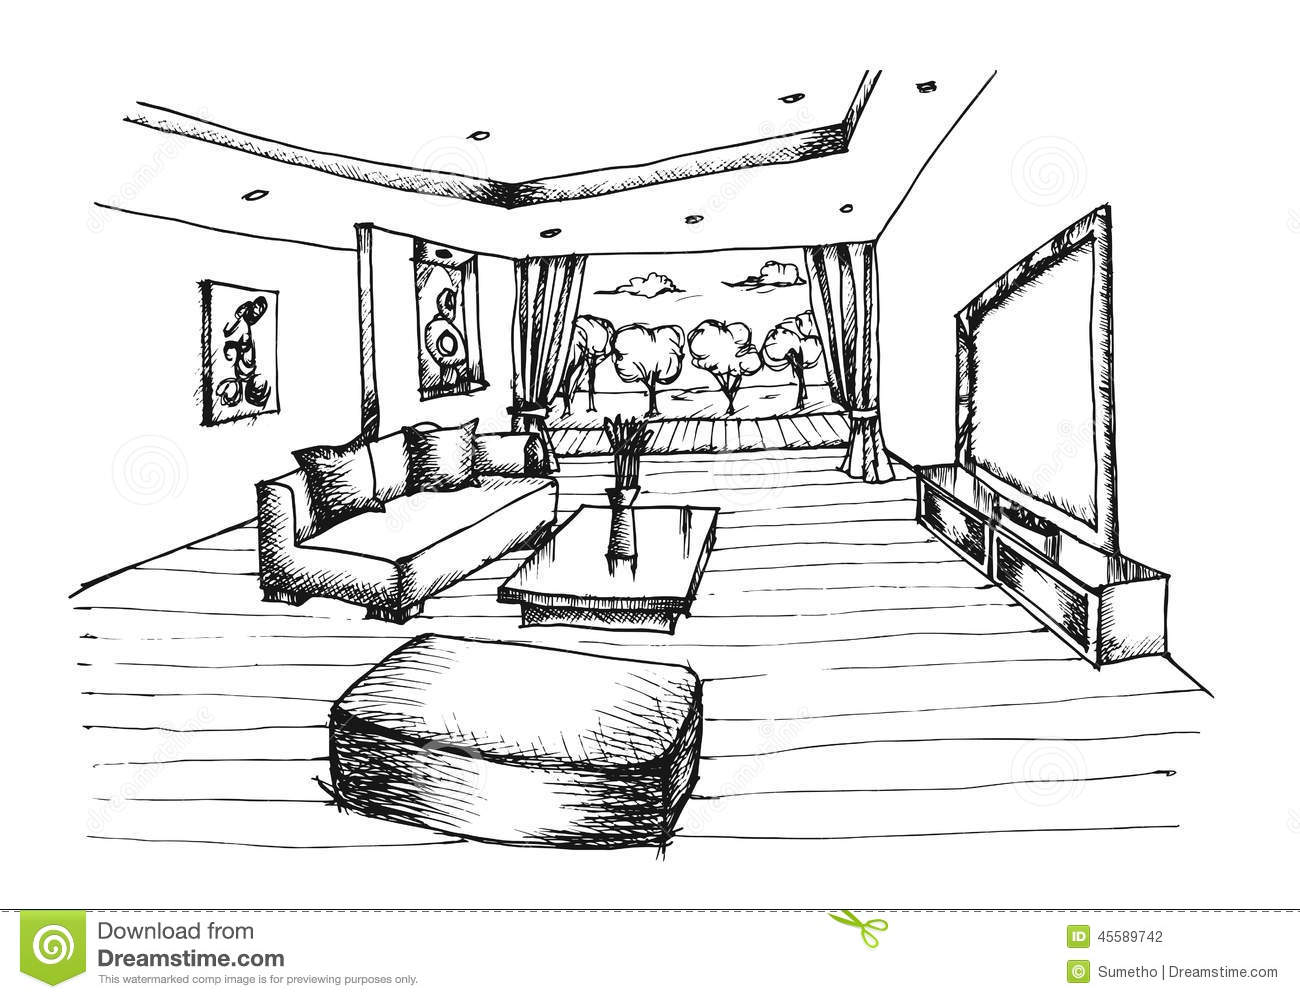 Living room drawing design - Hand Drawing Interior Design For Living Room